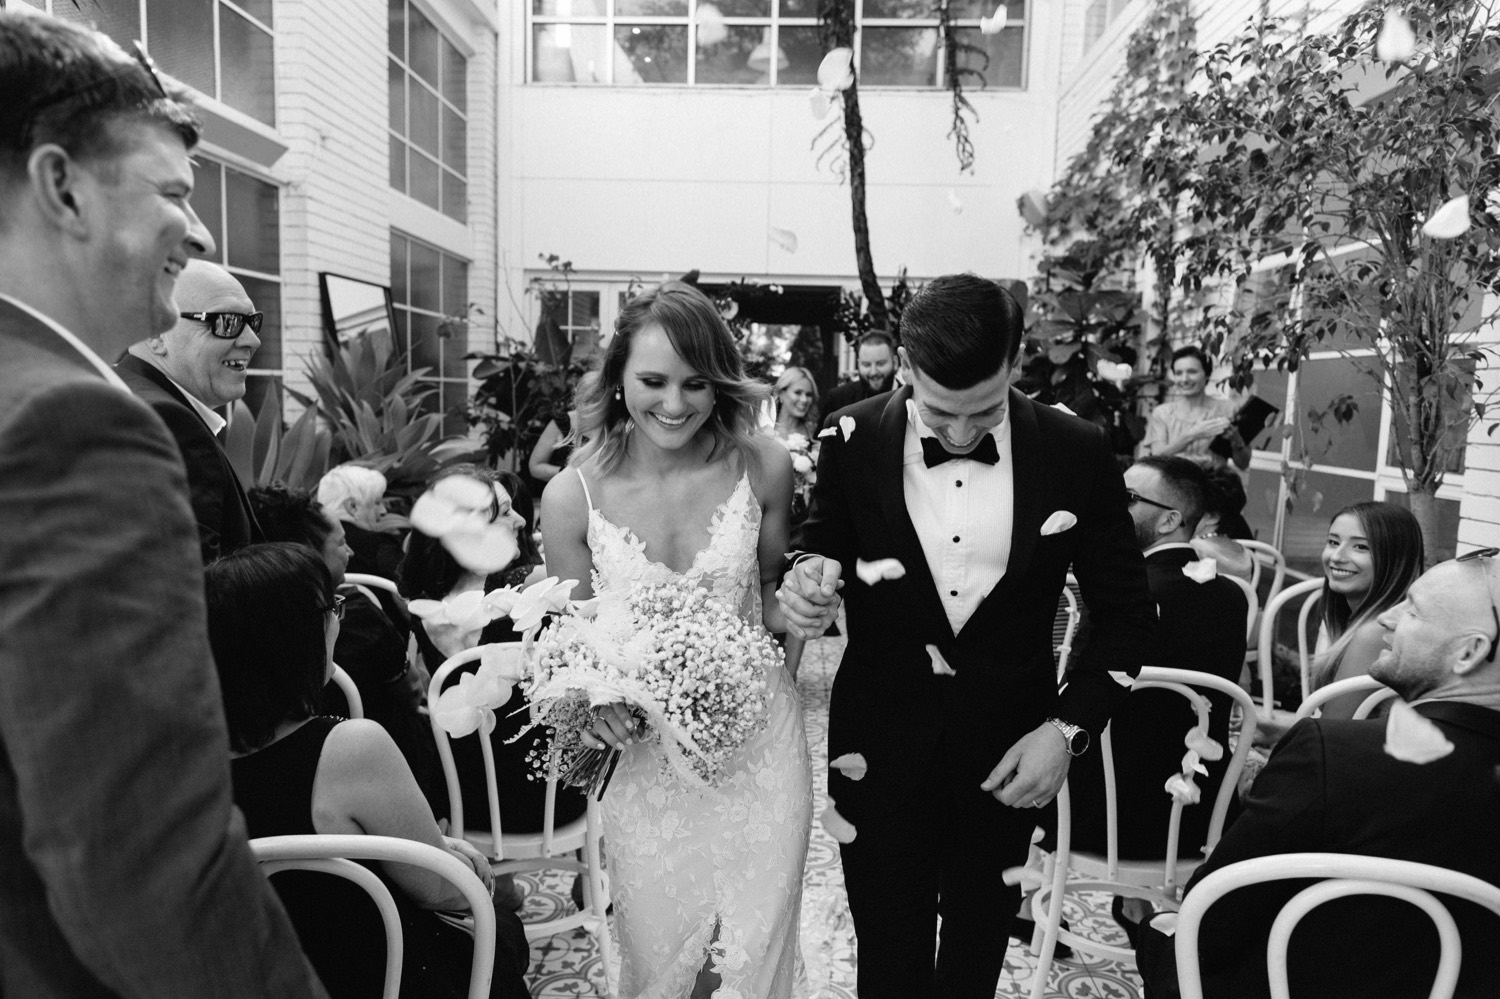 fun shot of bride and groom exiting down the aisle after the ceremony